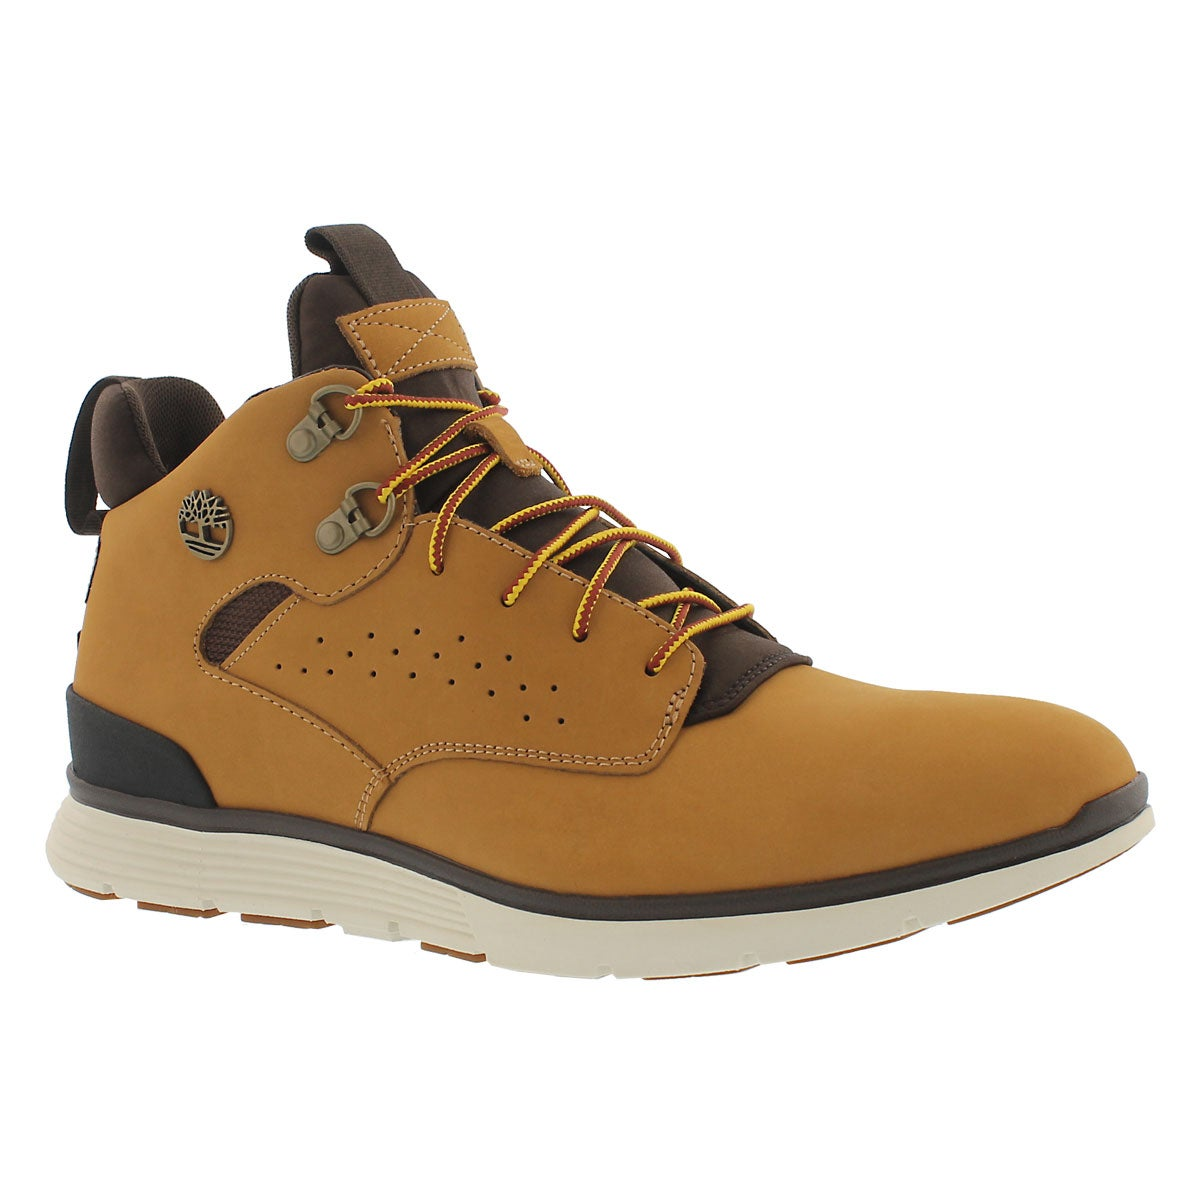 Boot Barn has a wide selection of 6 inch boots from all the leading brands that you know and love. Choose from Timberland Work Boots to Wolverine Work Boots. With such a large selection of 6 inch work boots for men and women, everyone will be able to find the 6 inch work boots they are looking for.